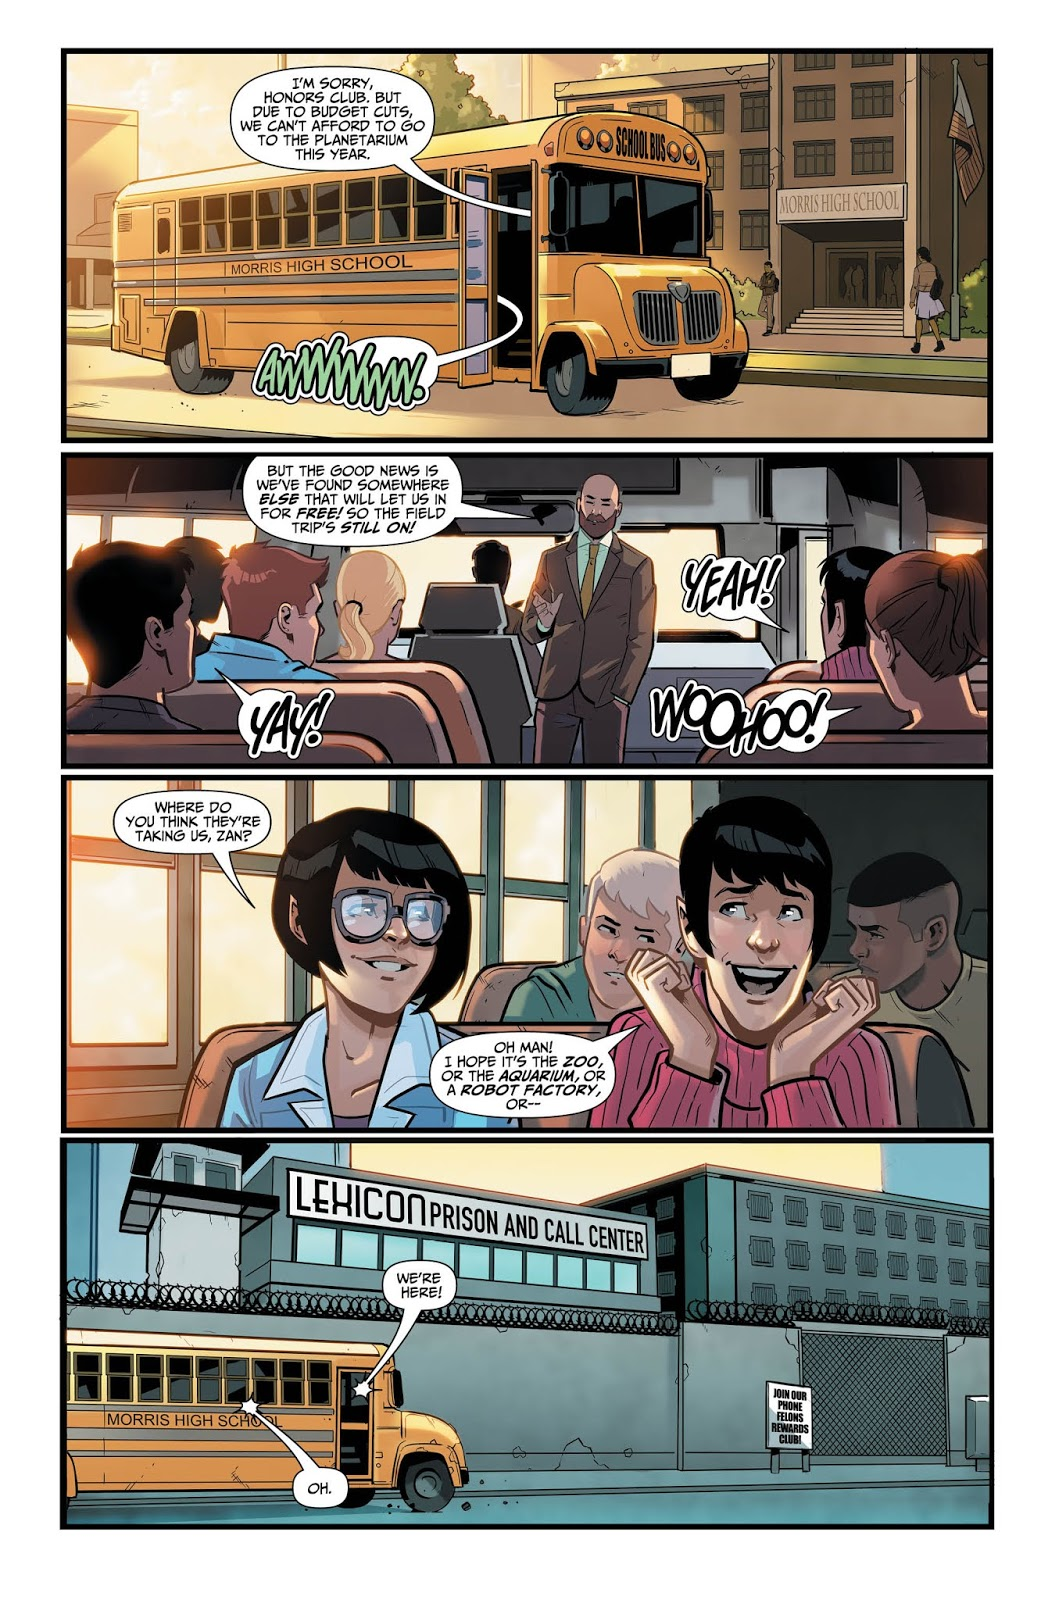 WONDER TWINS #2 Page 4. Image Courtesy of DC Entertainment.